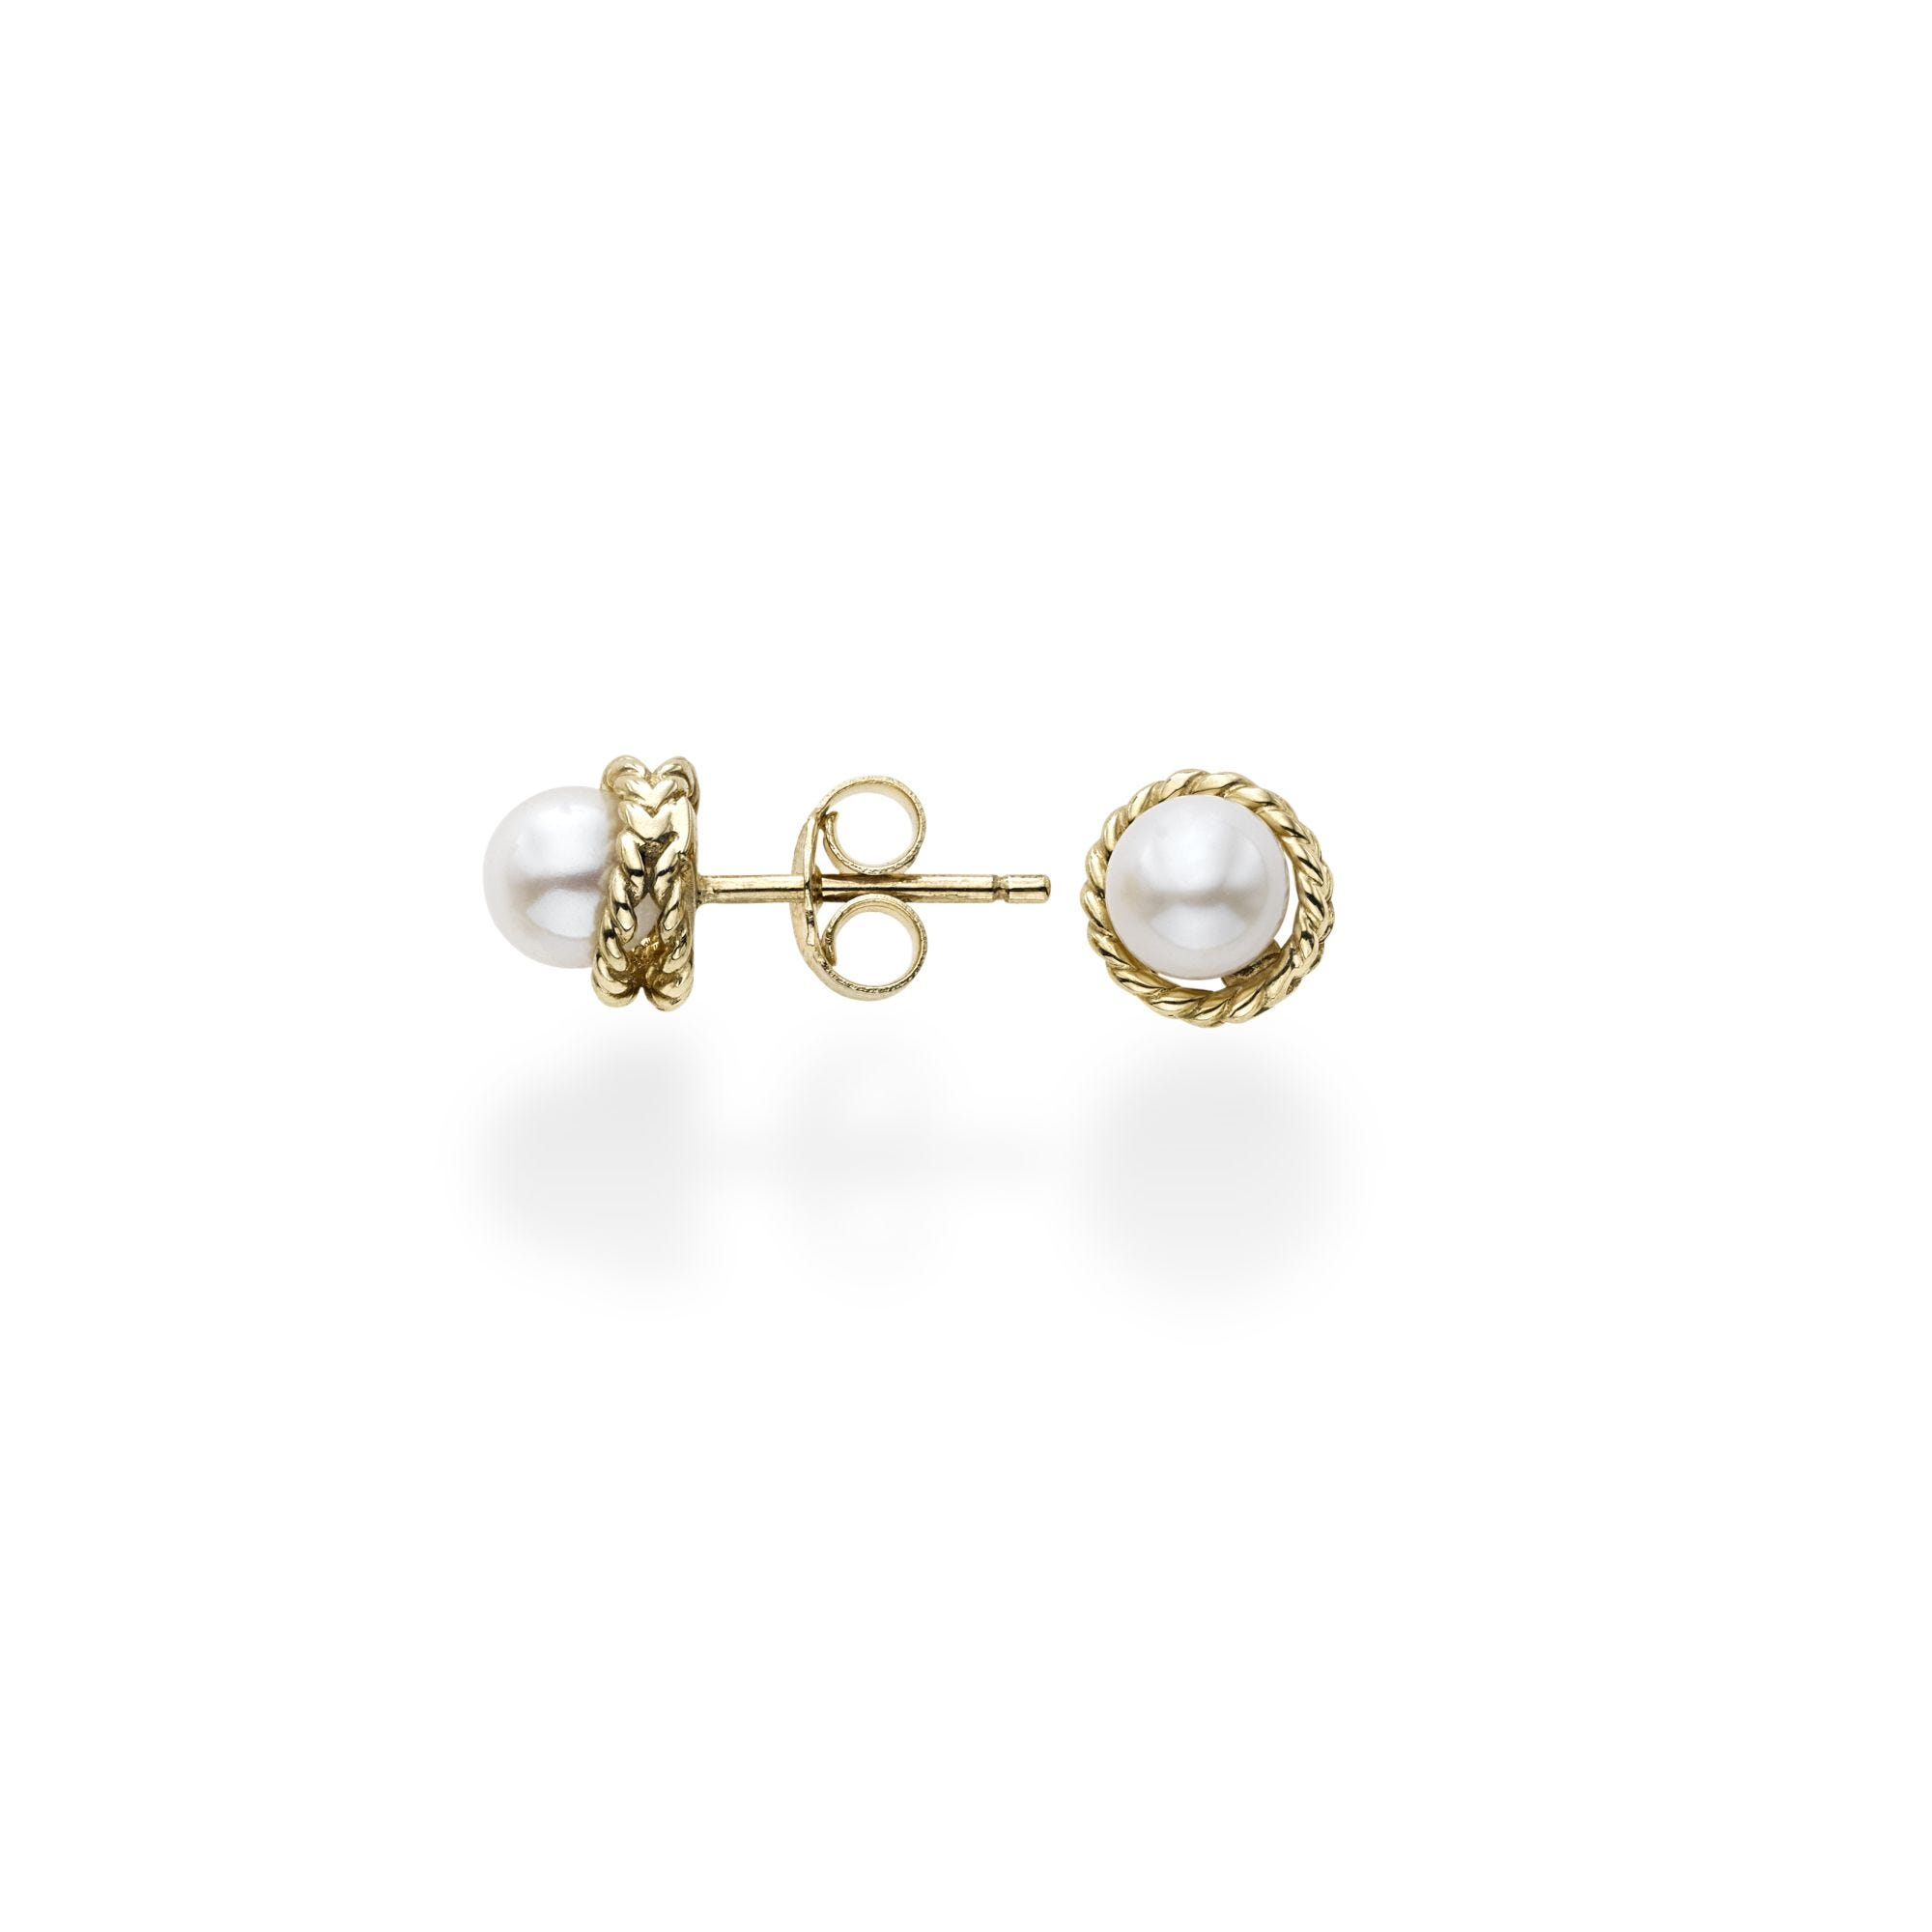 Freshwater Pearl Studs in 14k Yellow Gold